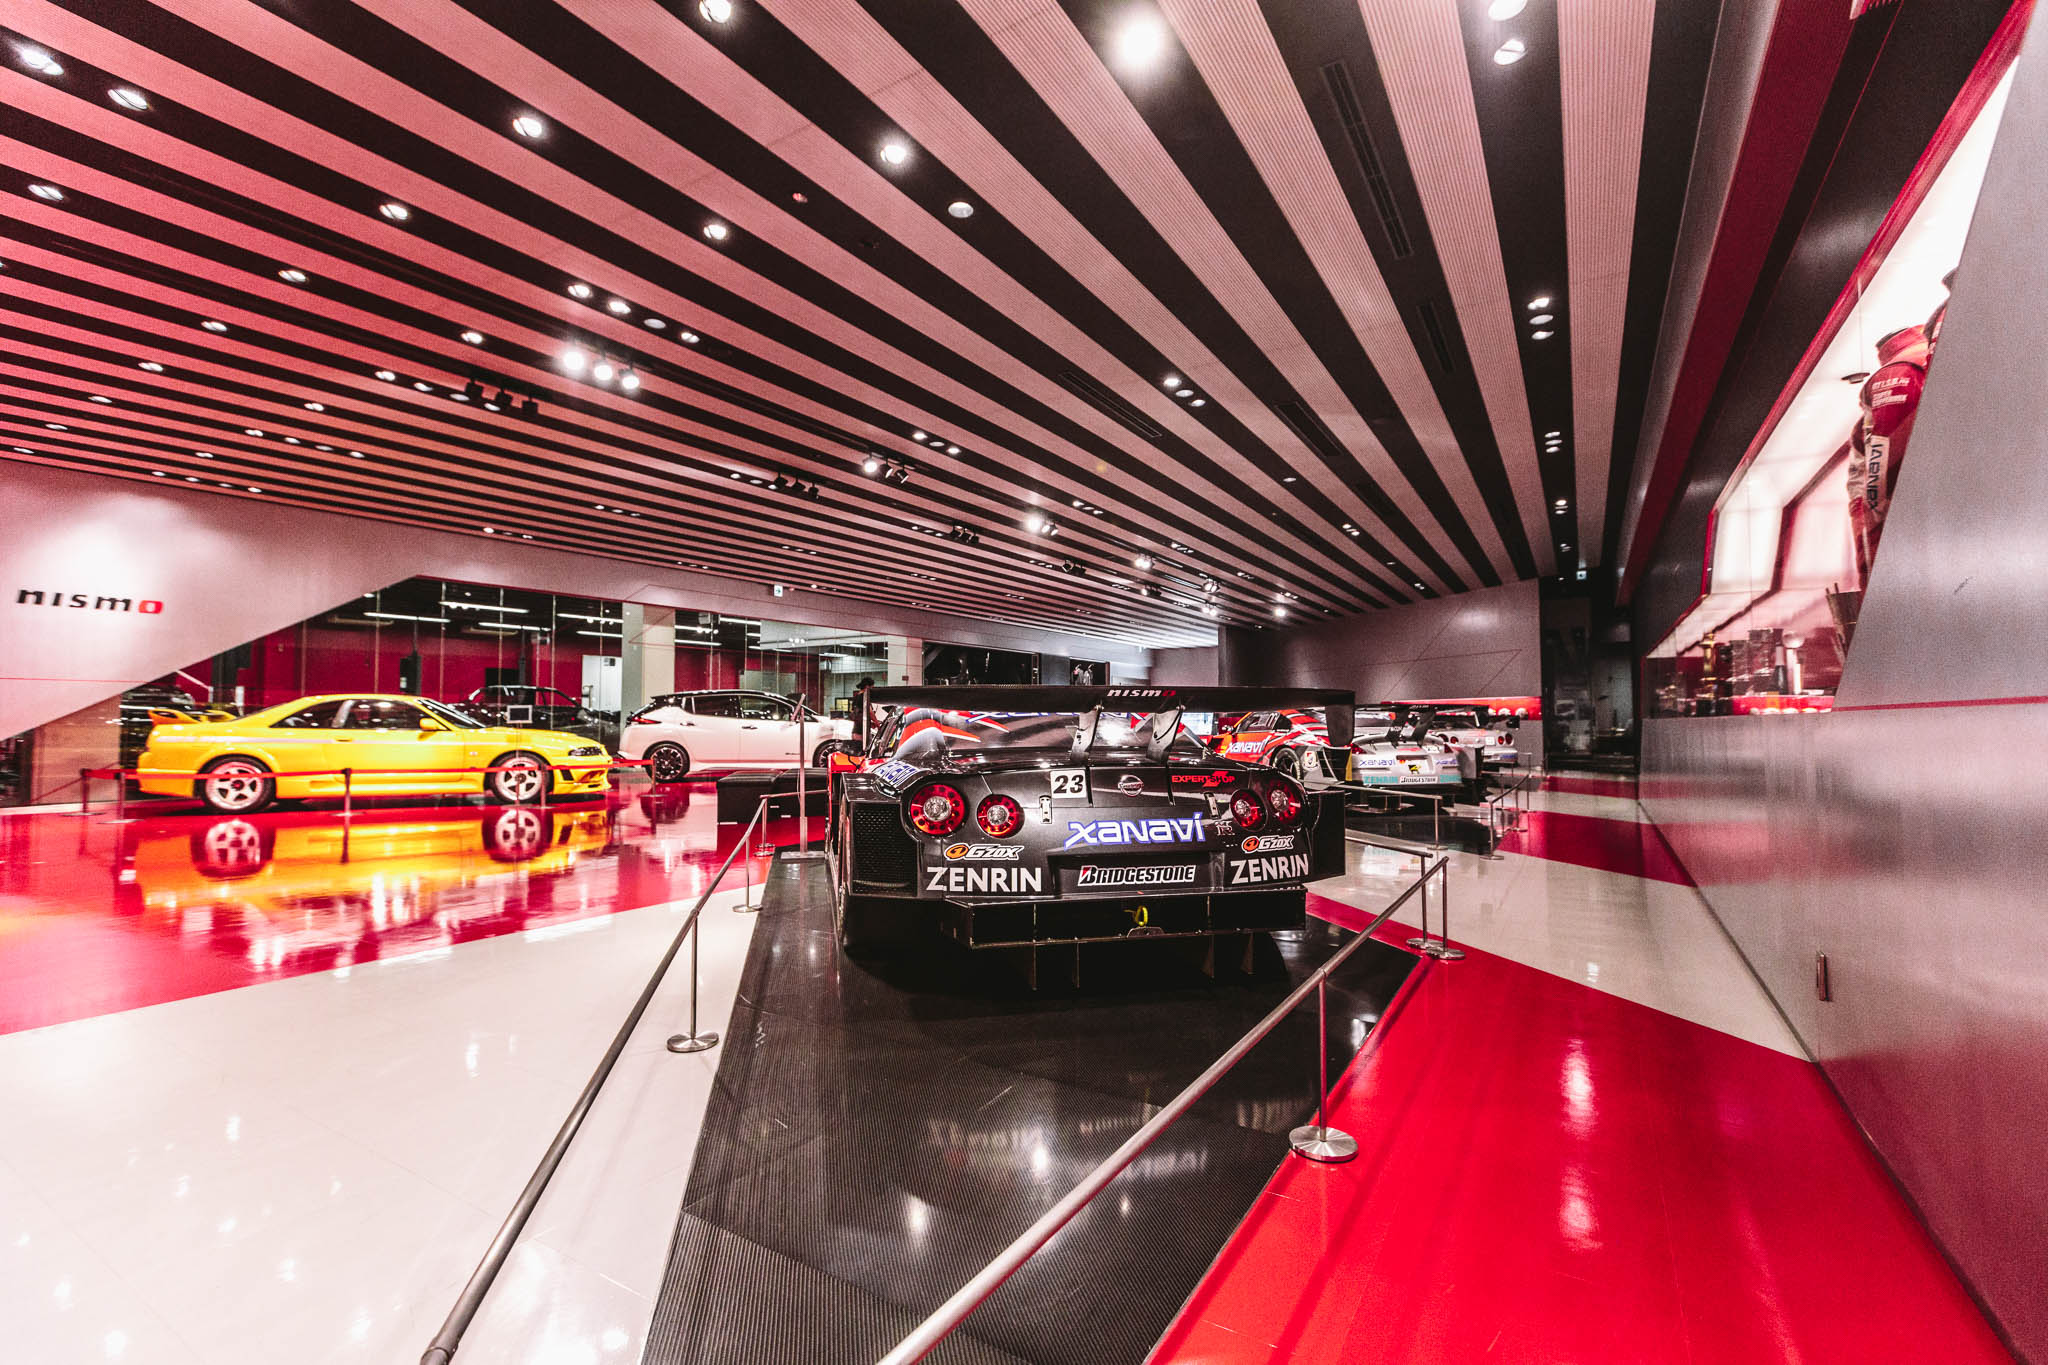 Nismo's greatest hits collection